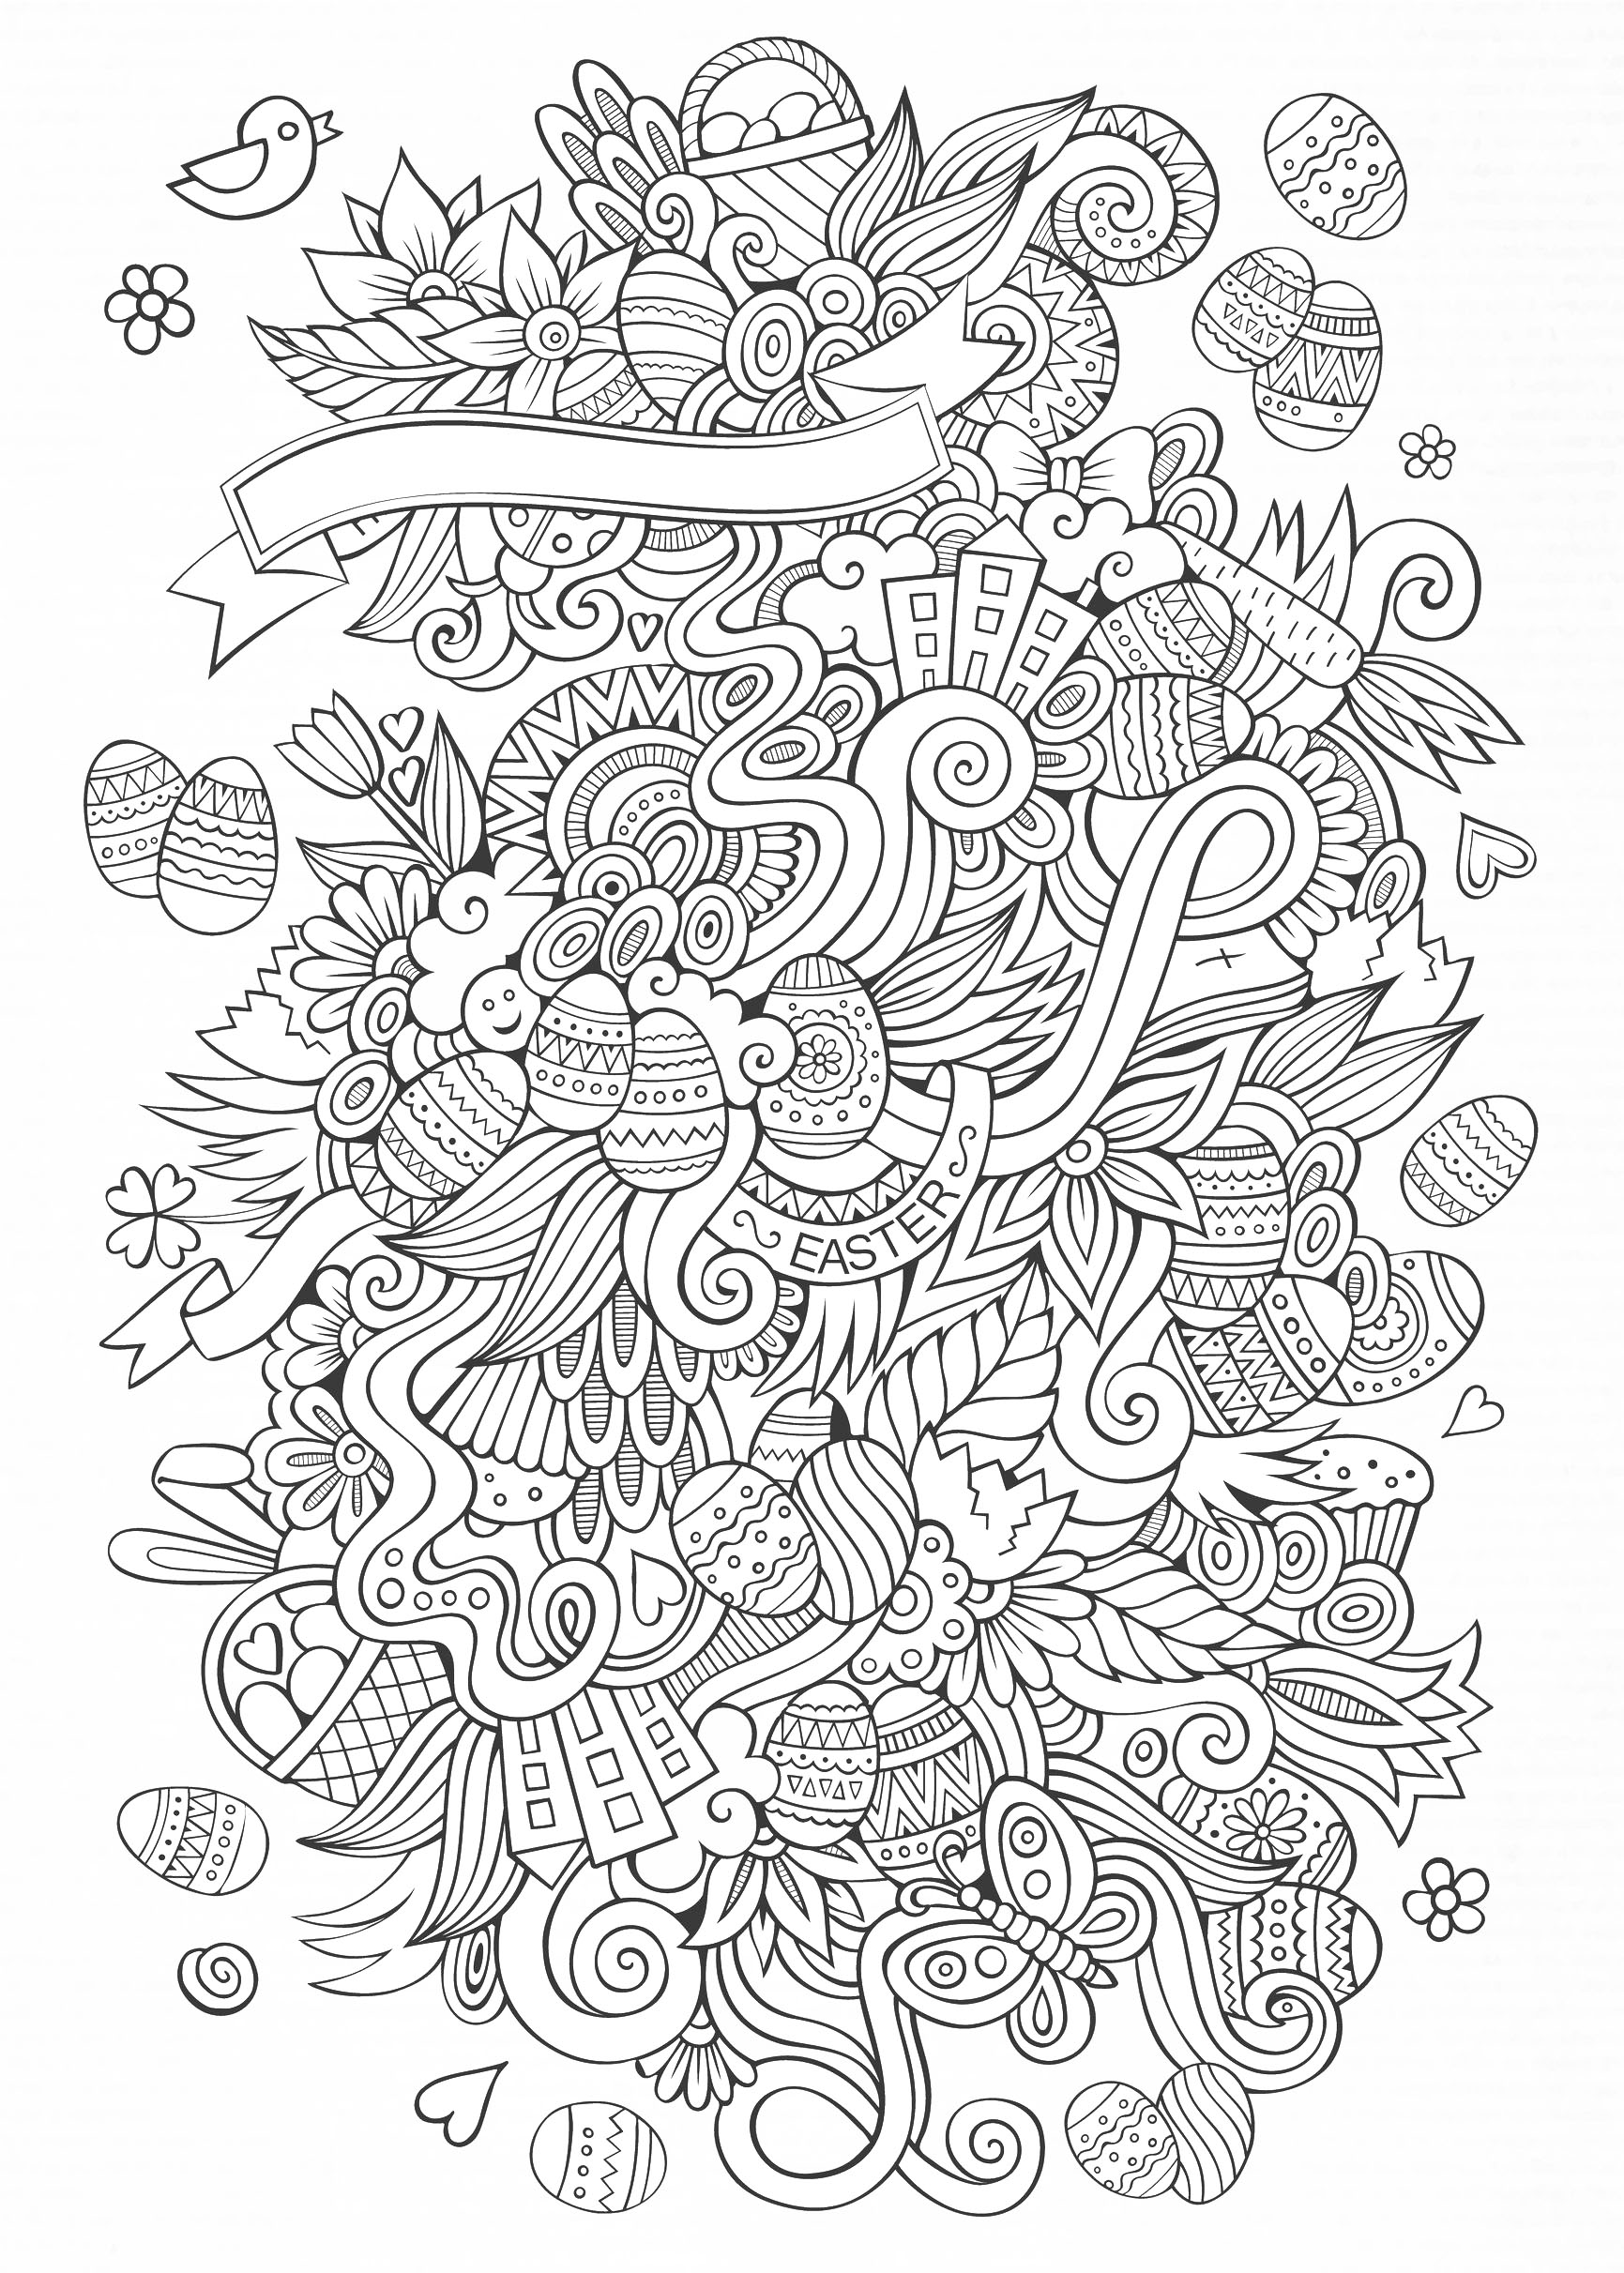 Easter coloring page to print and color